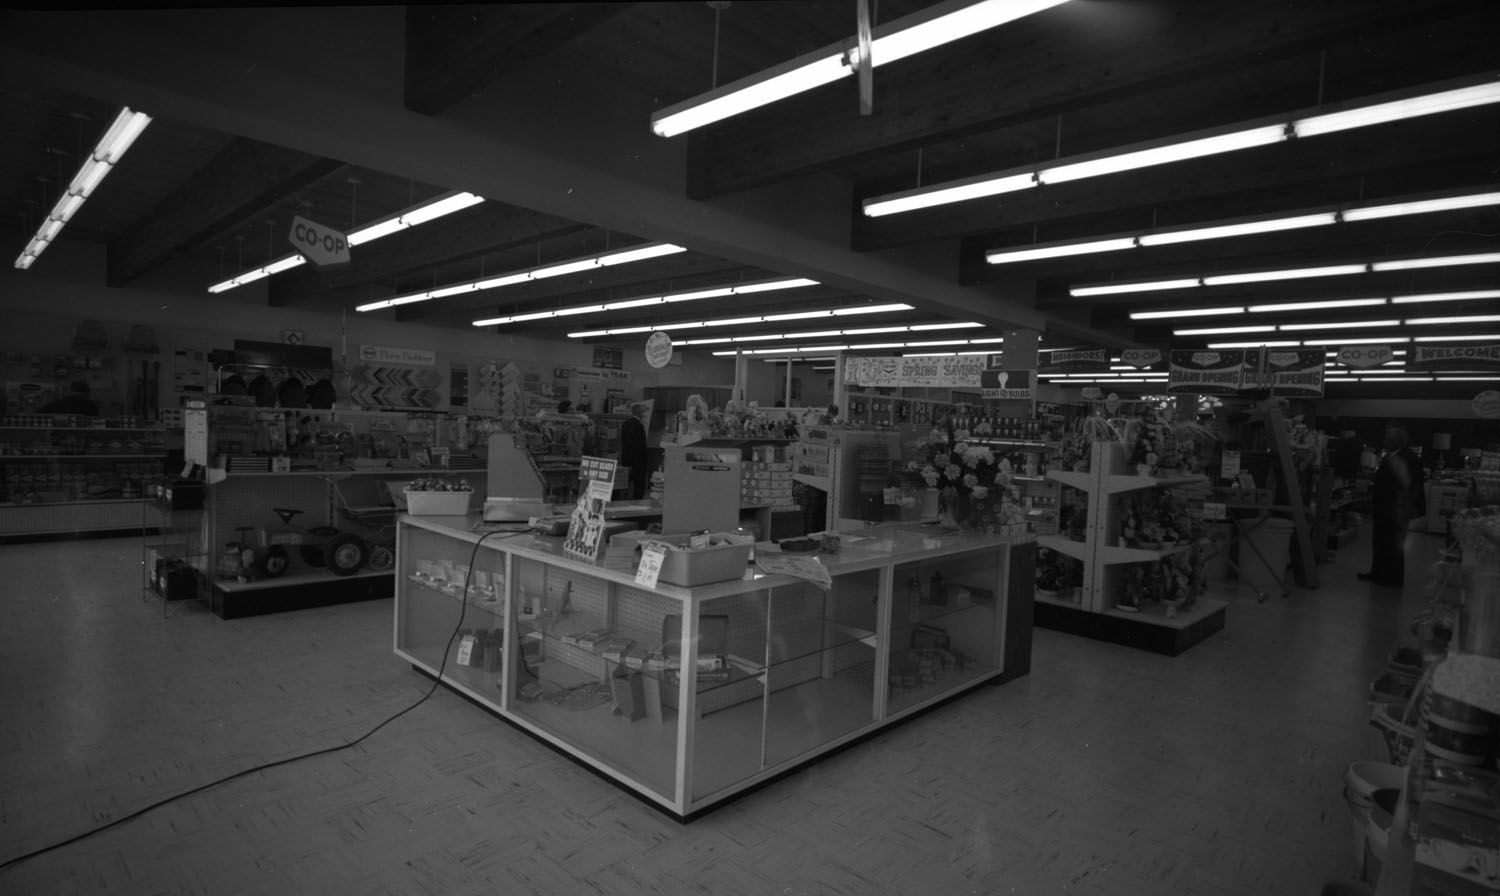 New Co-op Store Interior [DN-592]